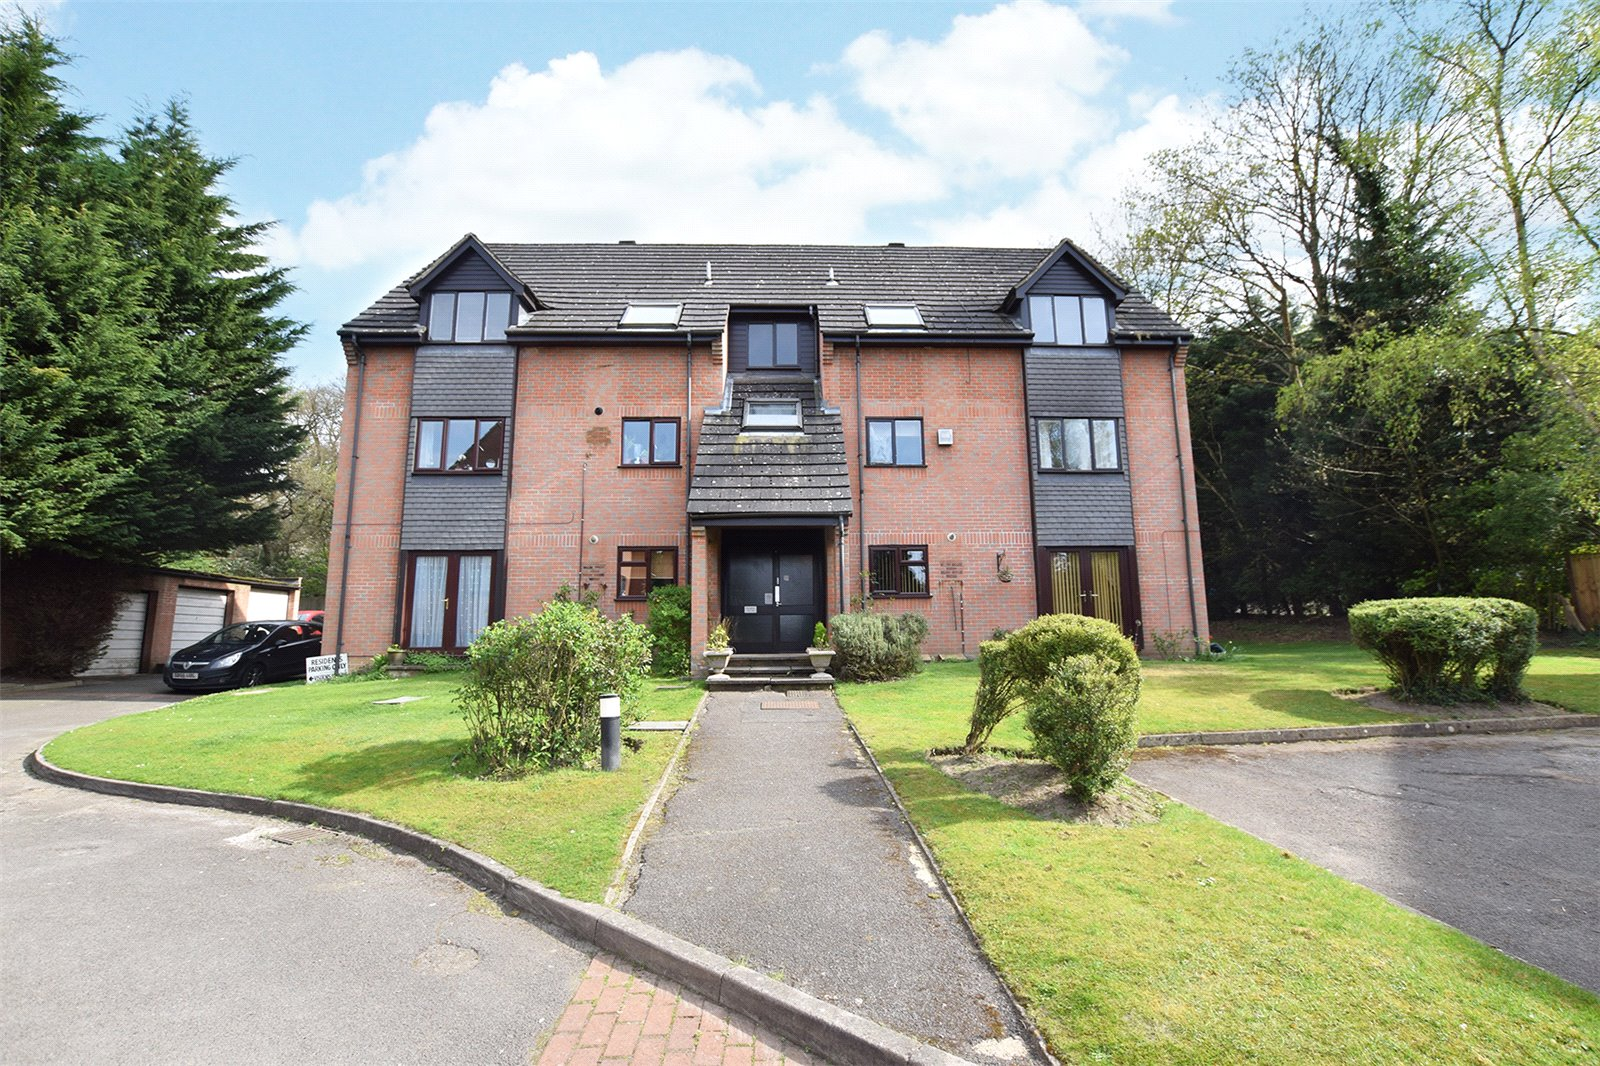 2 Bedrooms Apartment Flat for sale in Acacia Court, Bracknell, Berkshire, RG12